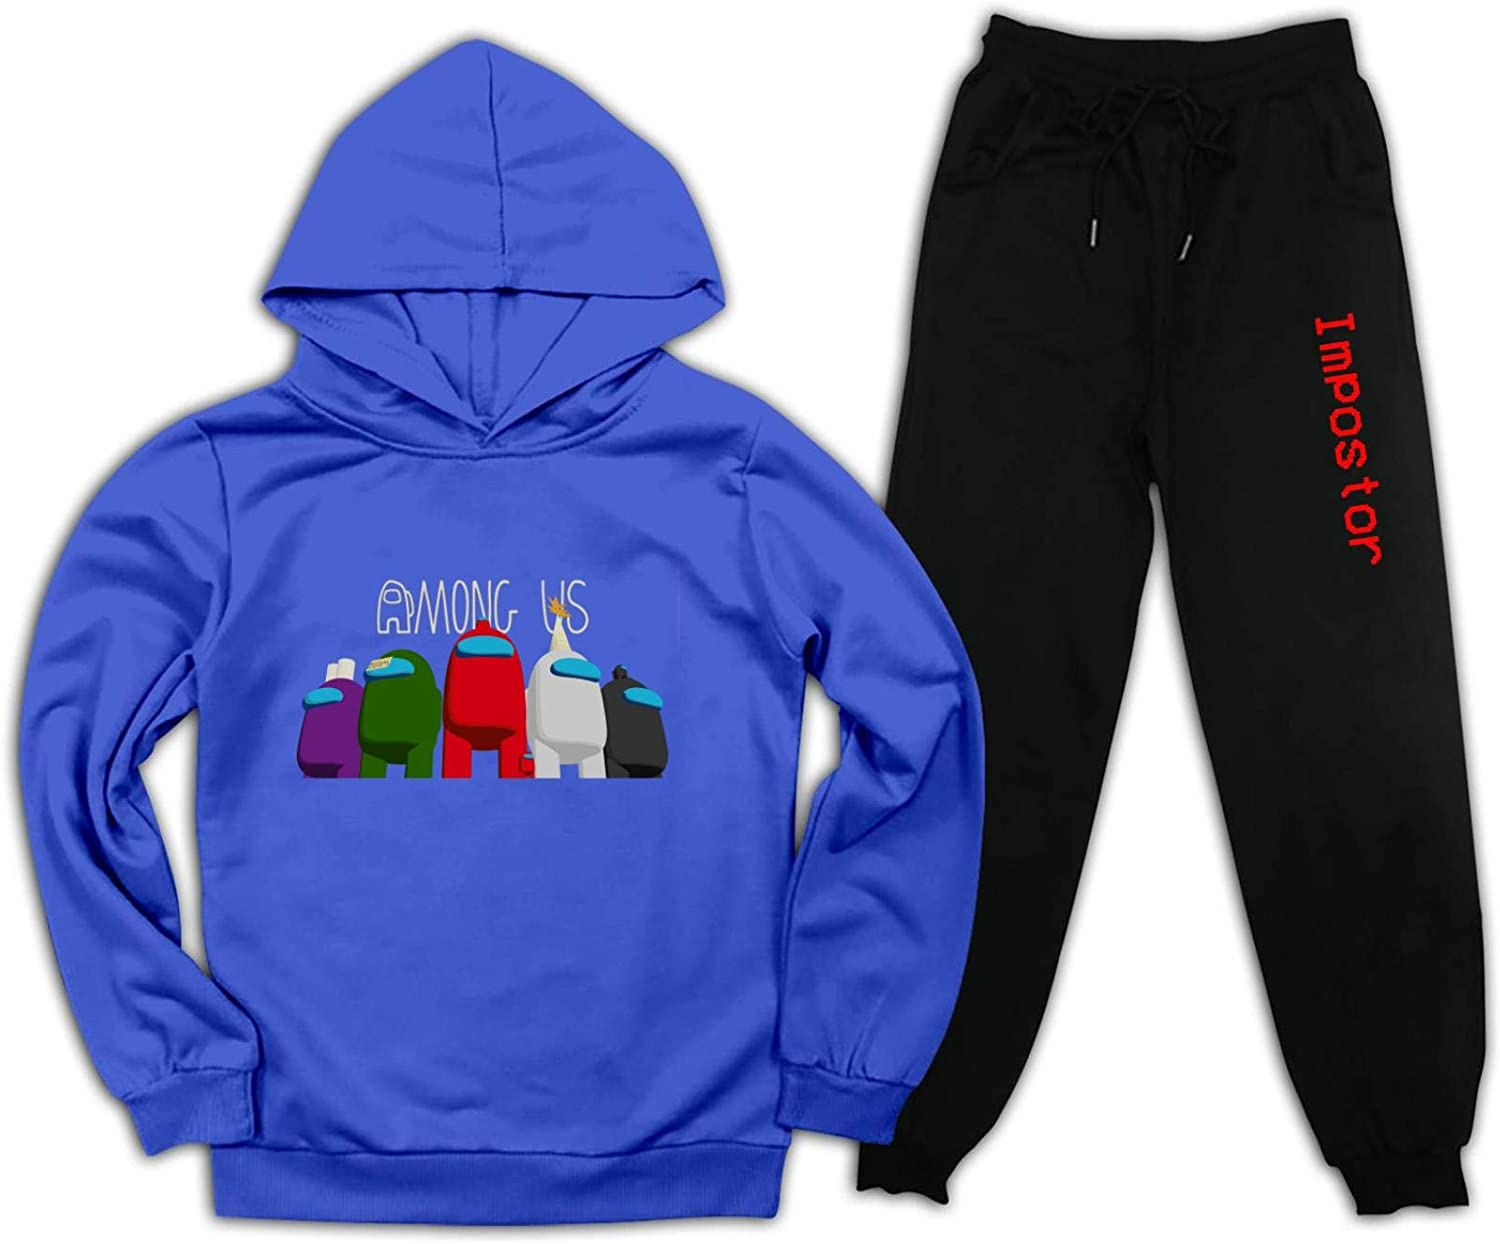 Teen Hooded Sweatshirt Suit for Kids Boy and Girls Among Us Pullover Hoodies and Sweatpants Suit